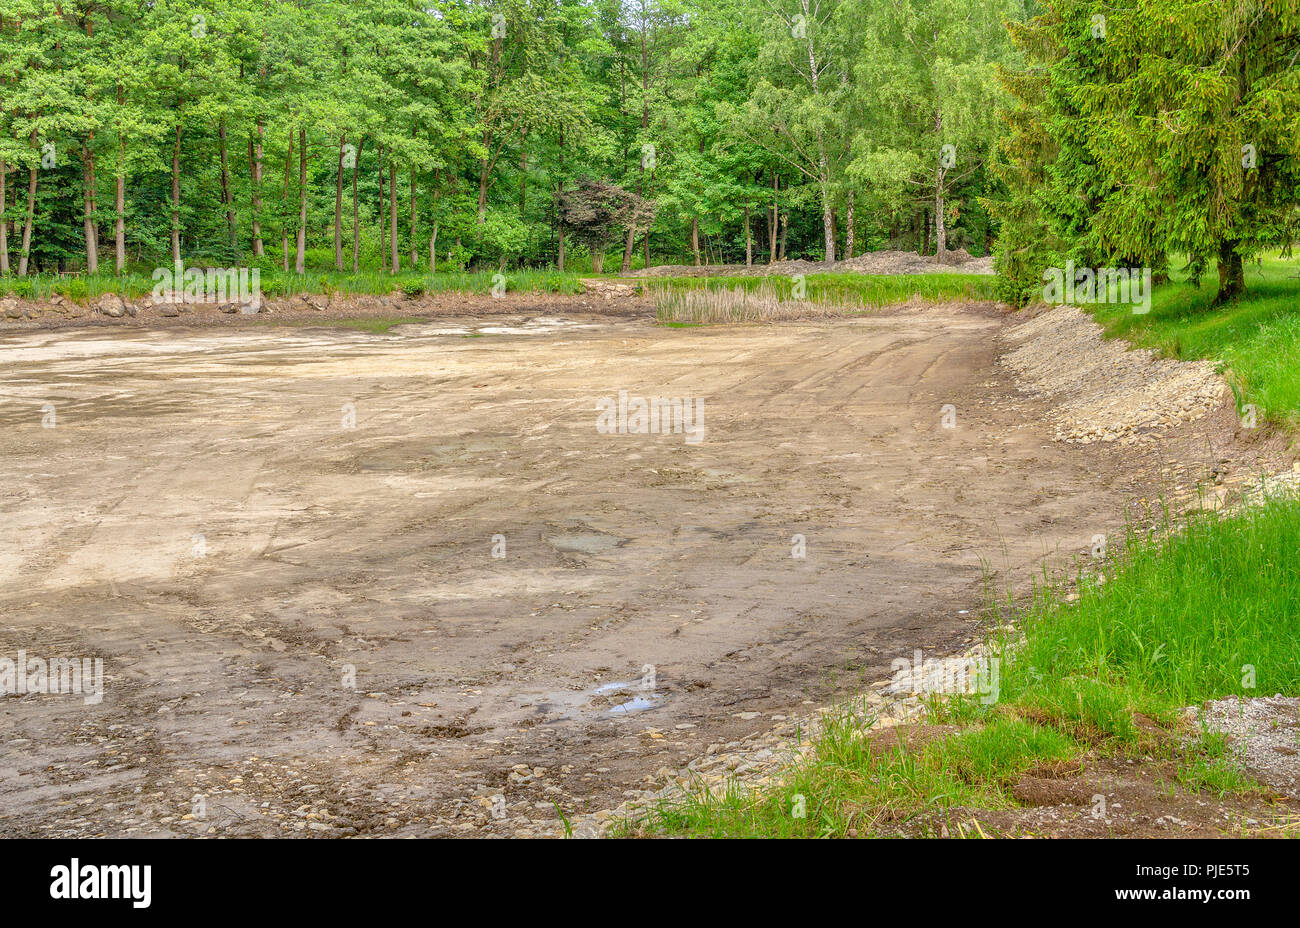 dewatered and excavated lake detail near a forest at spring time Stock Photo